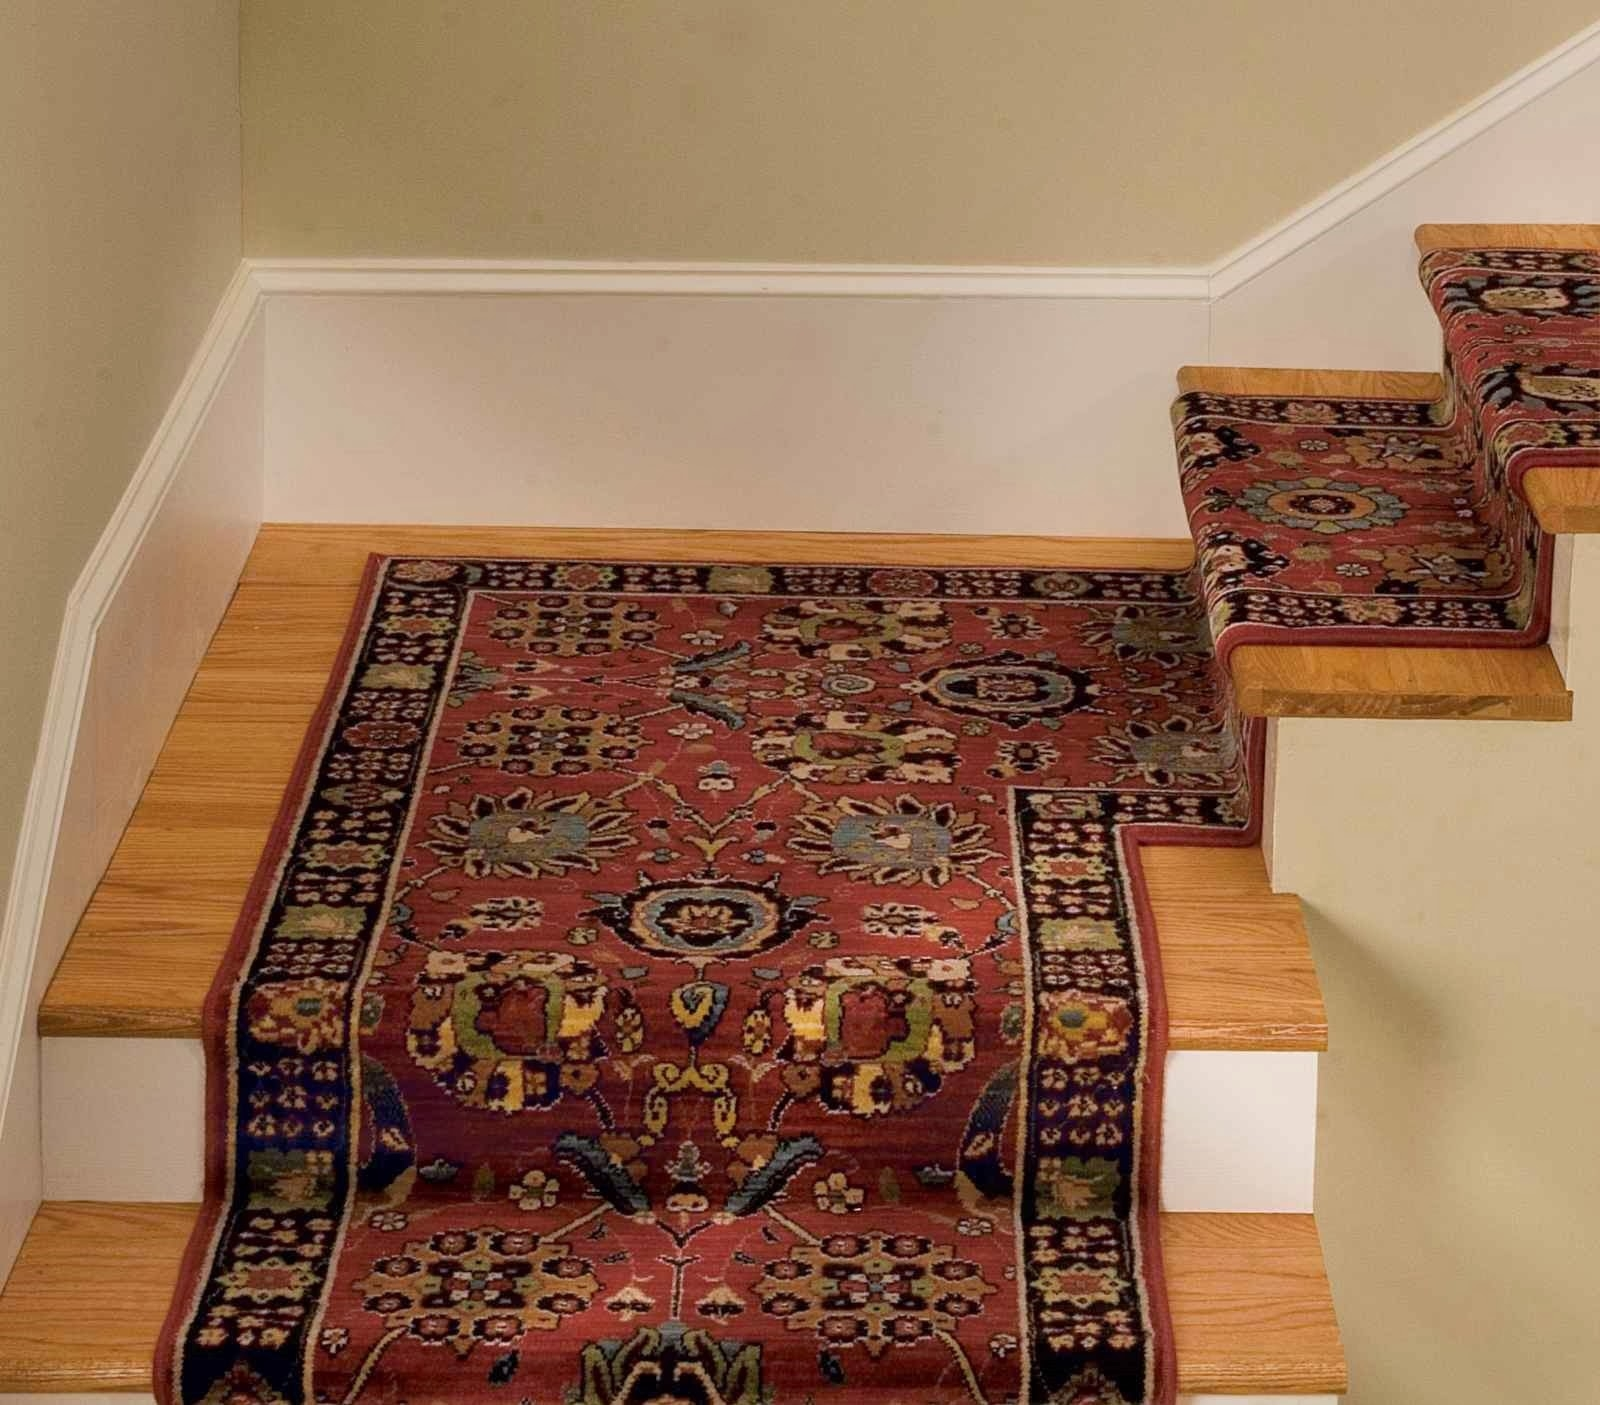 Flooring Pretty Stair Treads Carpet For Stair Decoration Idea Regarding Individual Stair Tread Rugs (Image 10 of 15)